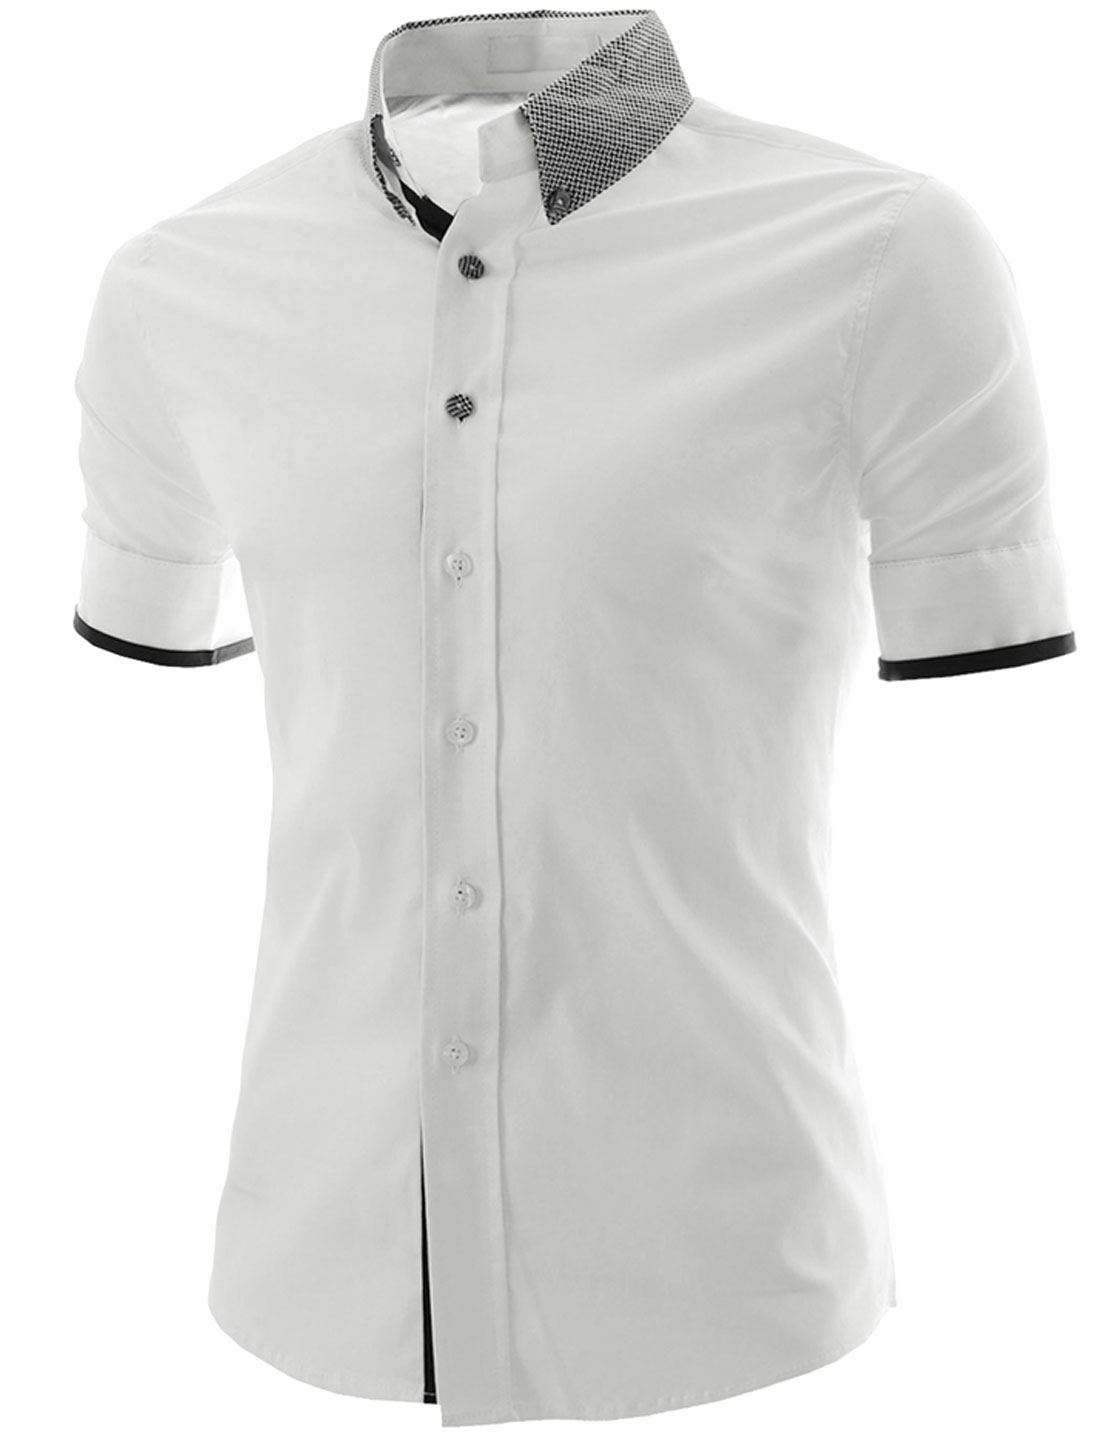 Men Convertible Collar Single Breasted Casual Shirt White M